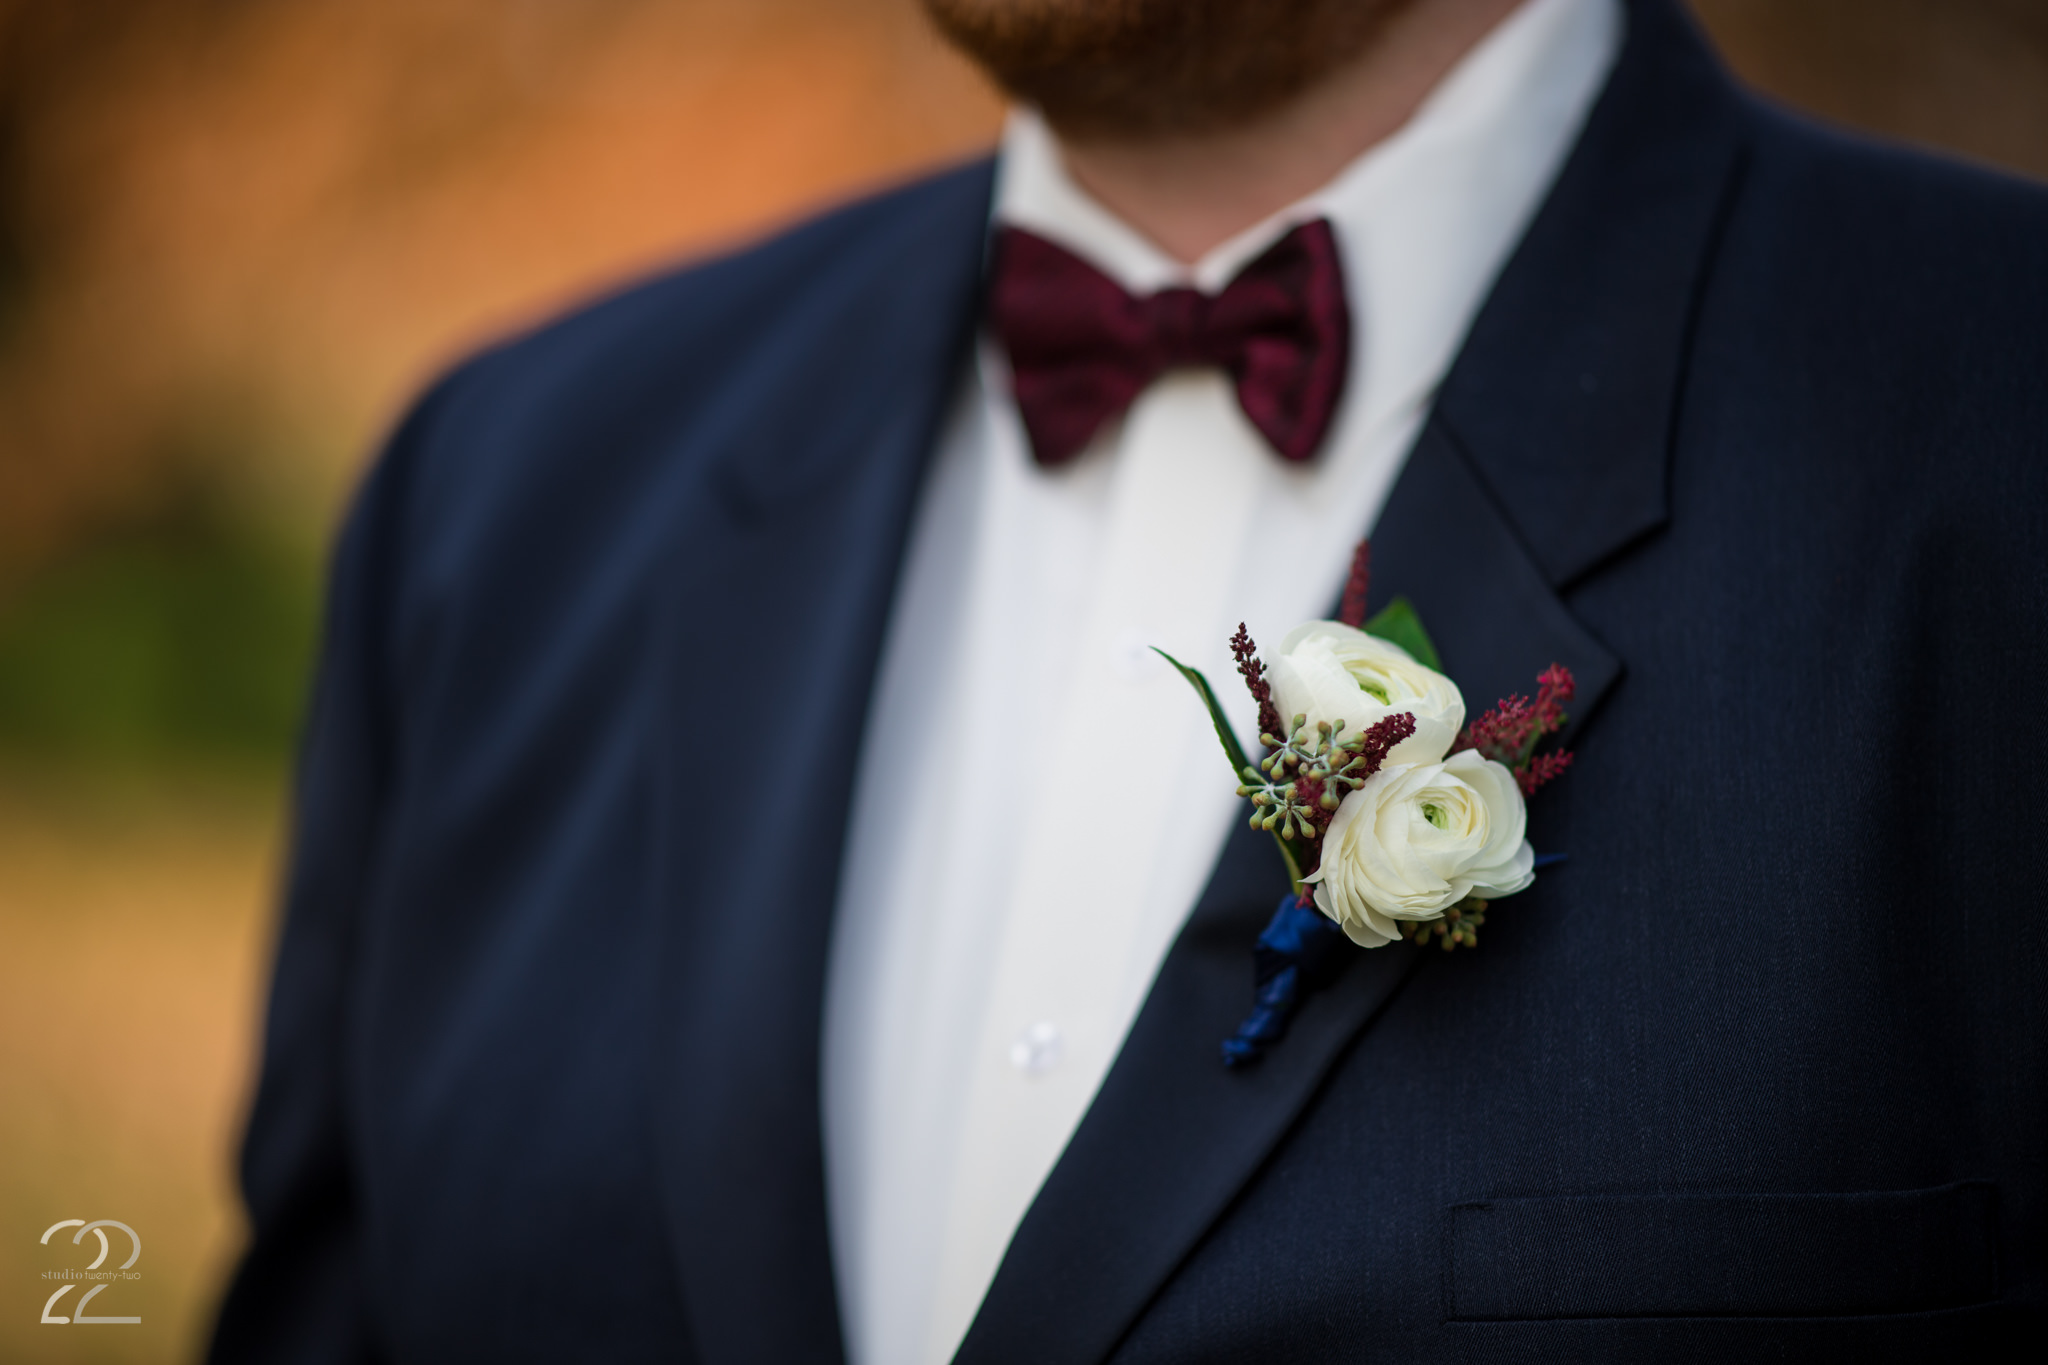 Wedding Floral Designs - Groom Boutonniere - Wedding Floral Ideas